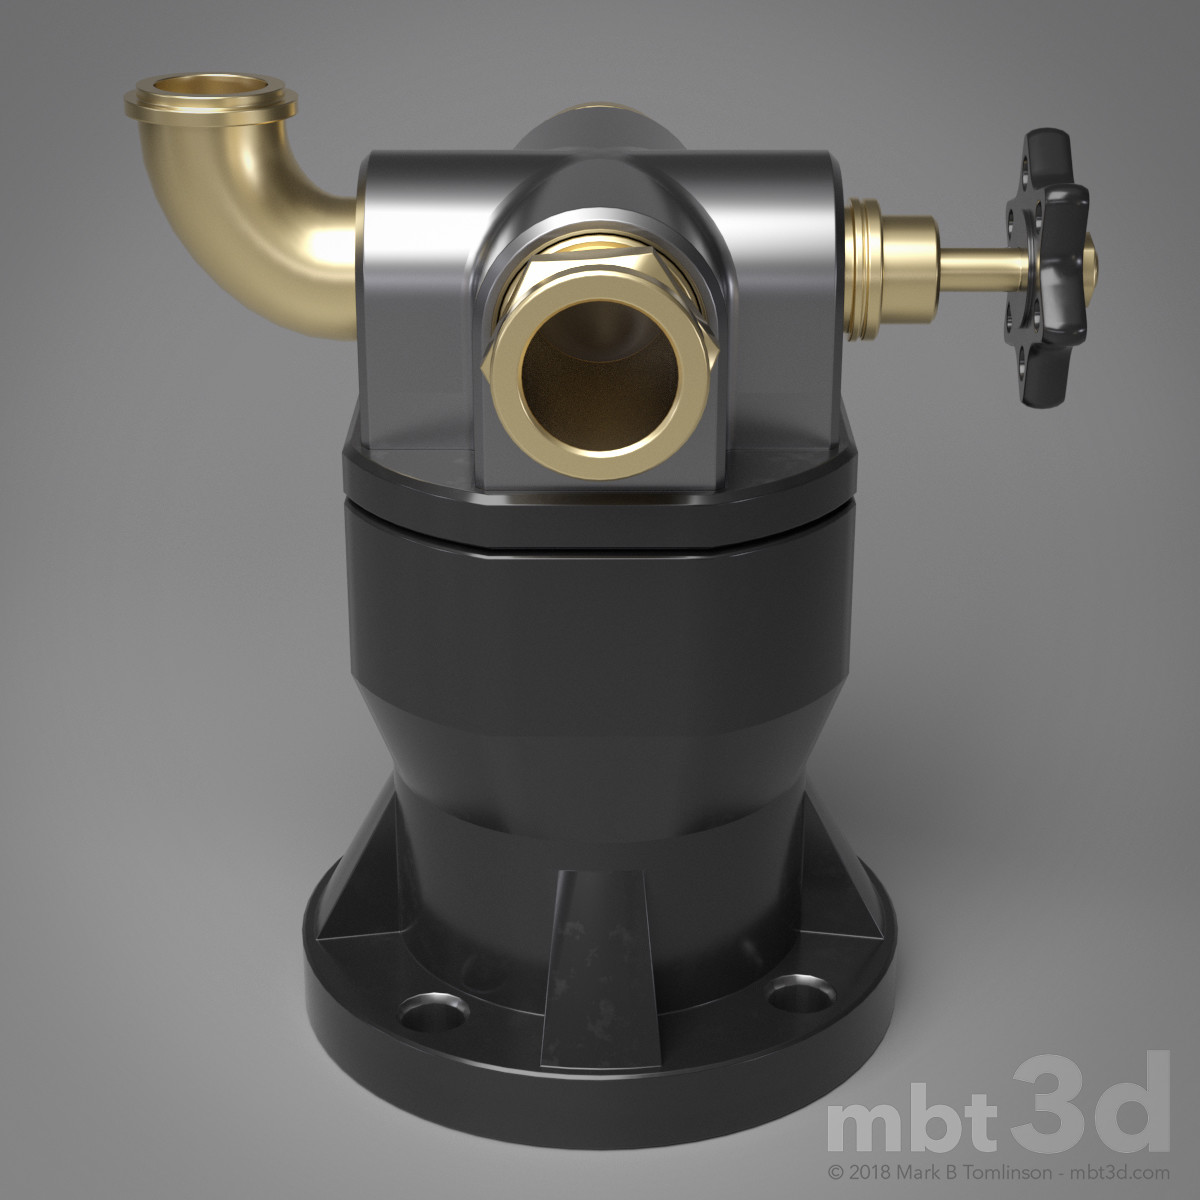 Box XVII: Hard surface model valve handle output